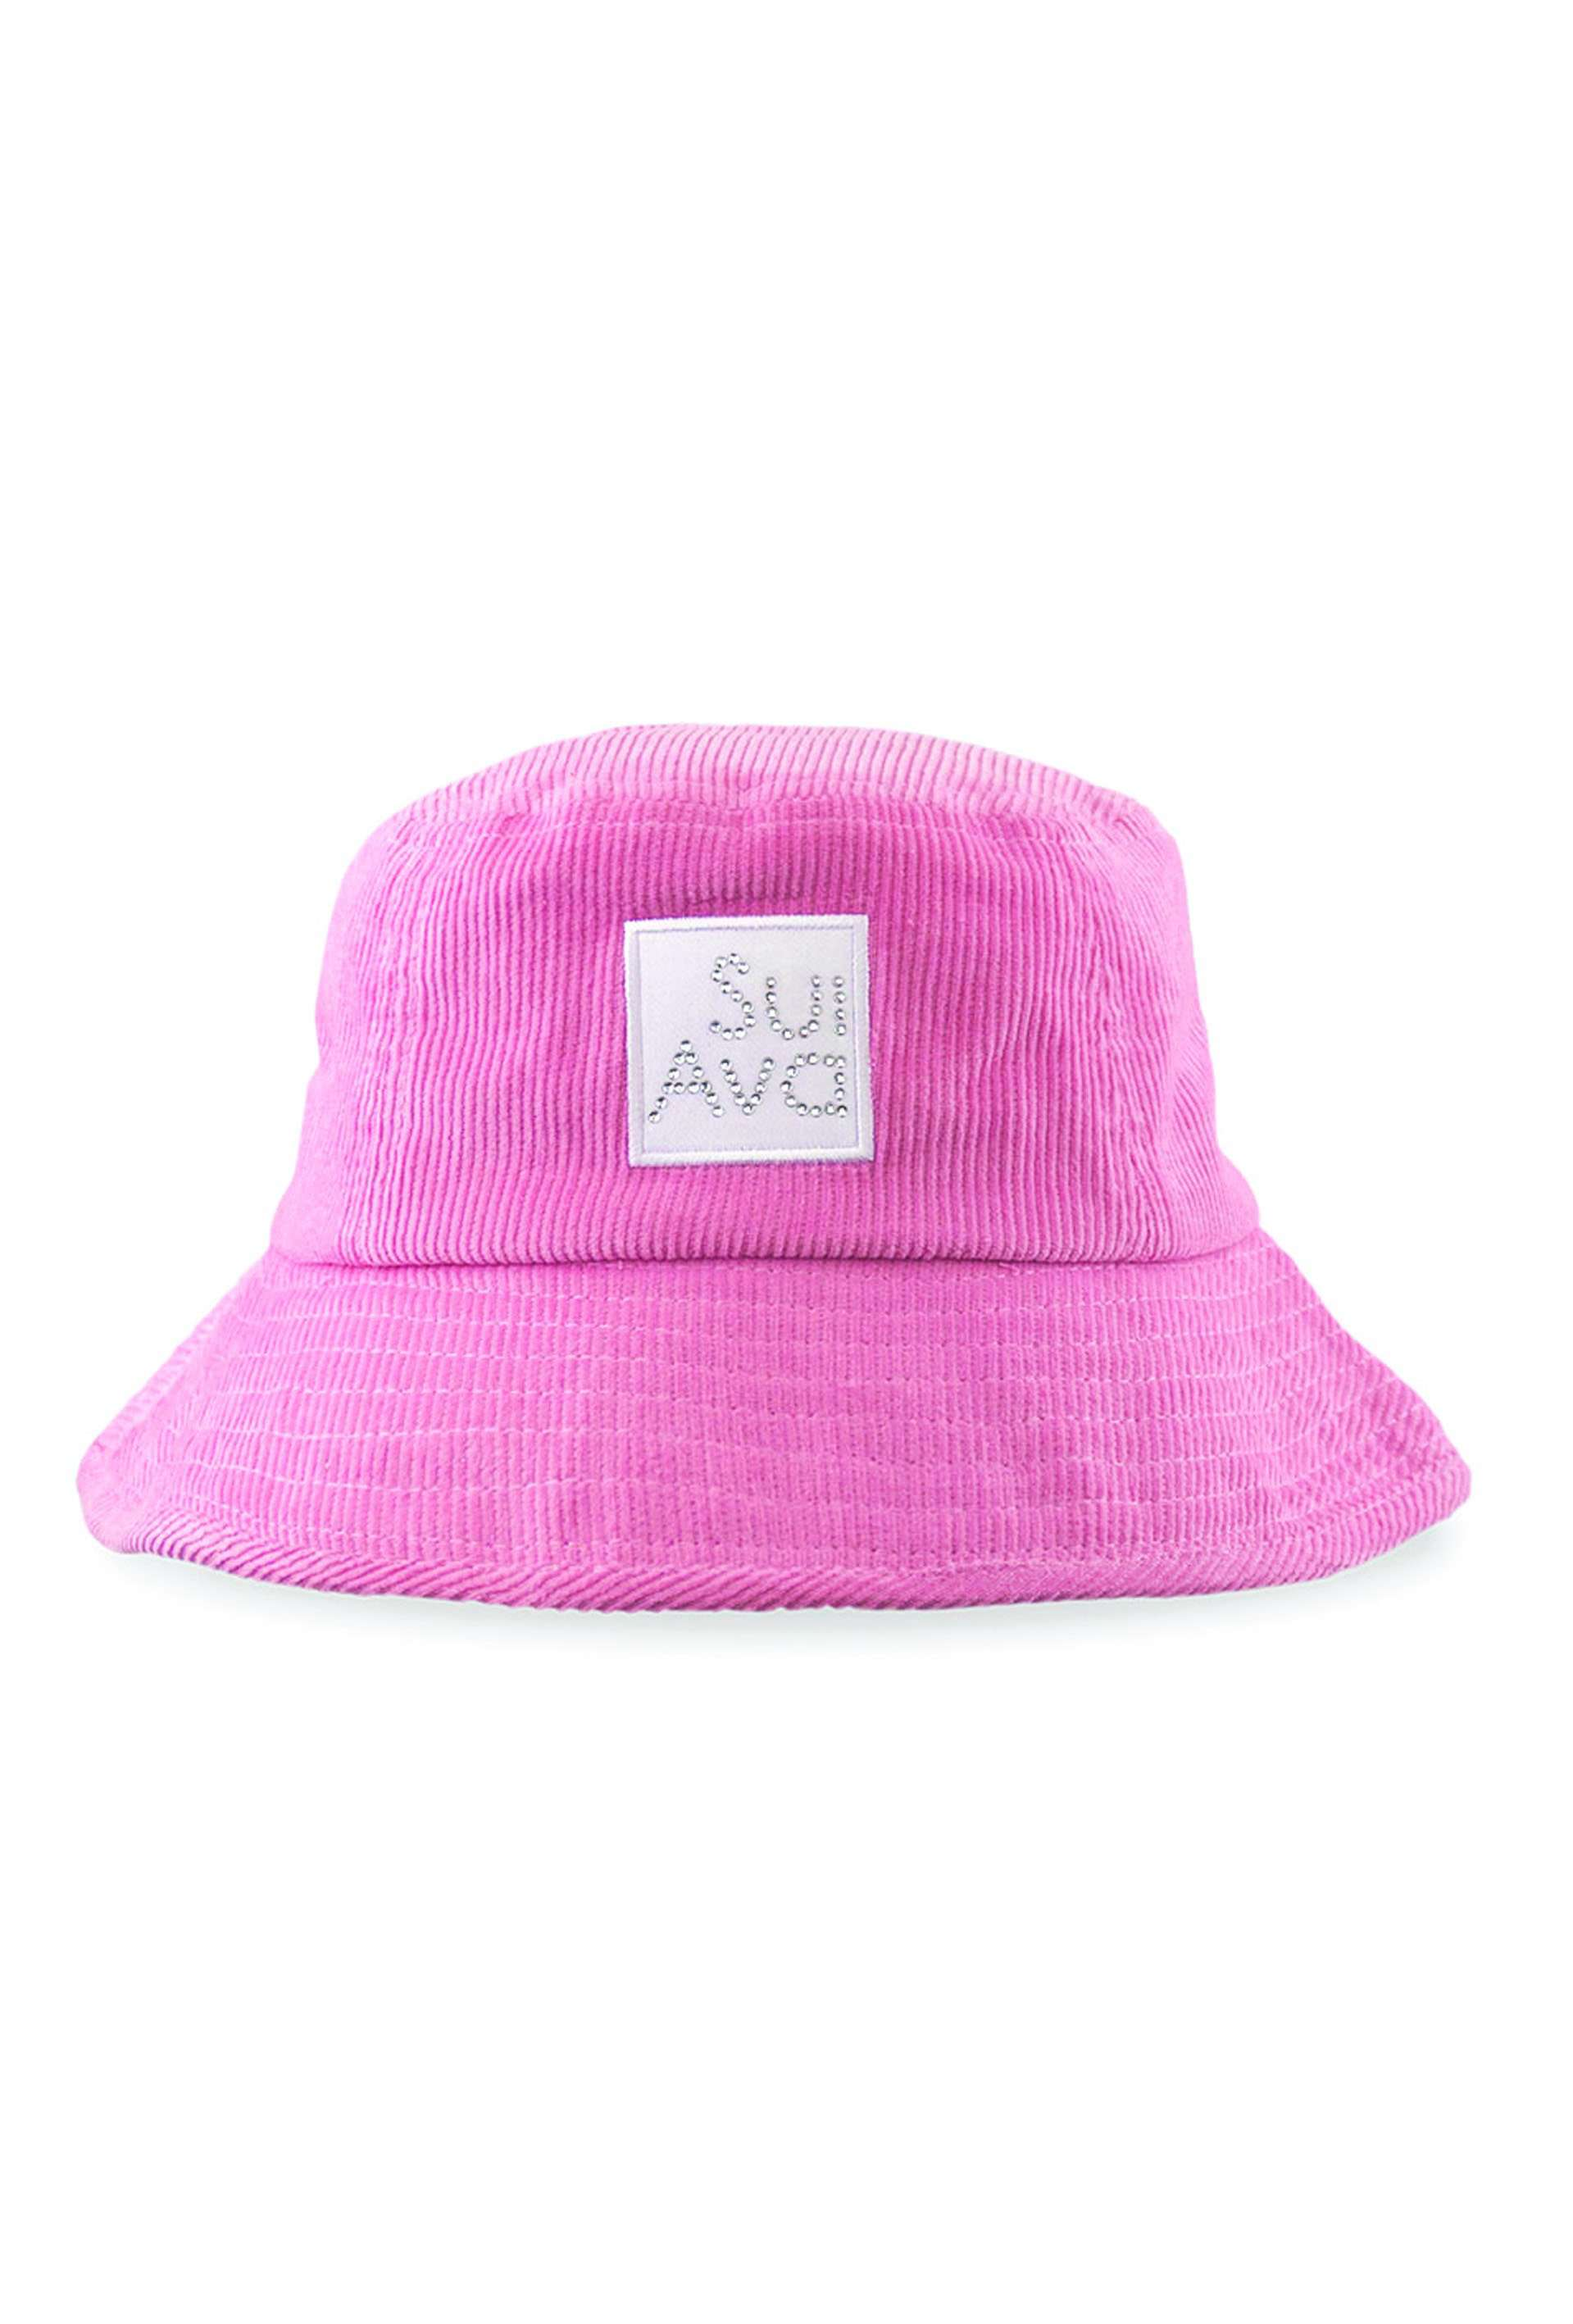 Christina Corduroy Buckethat - Pink - Sui Ava - Pink One Size